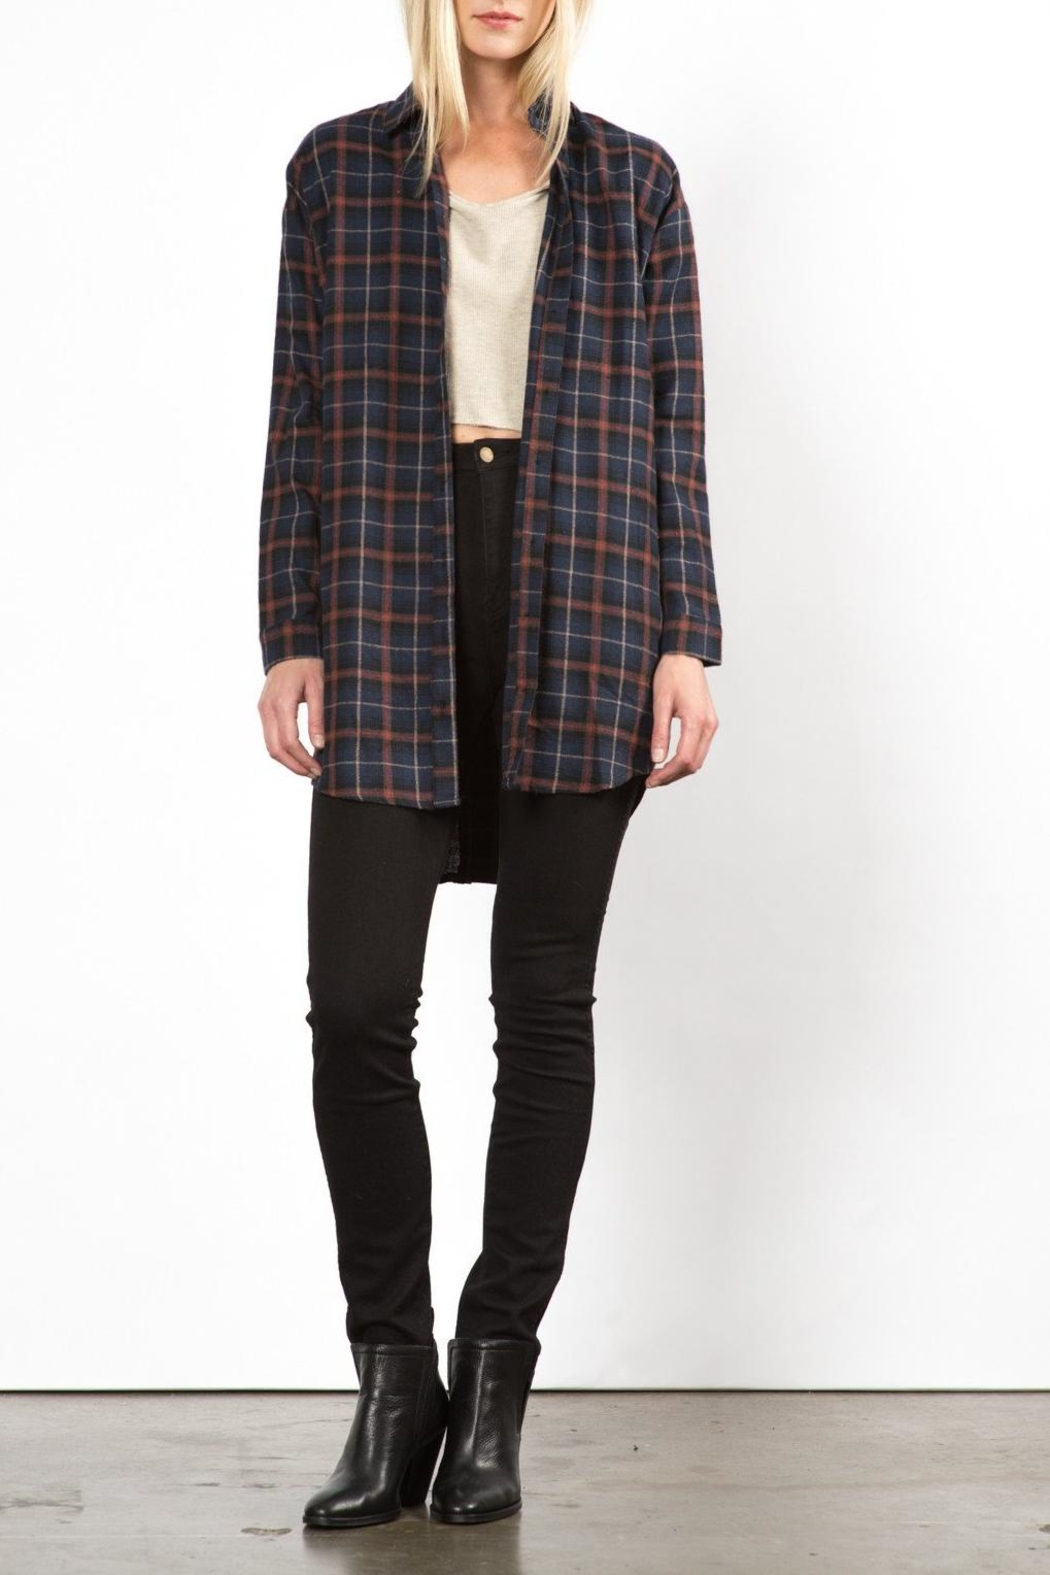 Very J Phoenix Plaid Top - Main Image